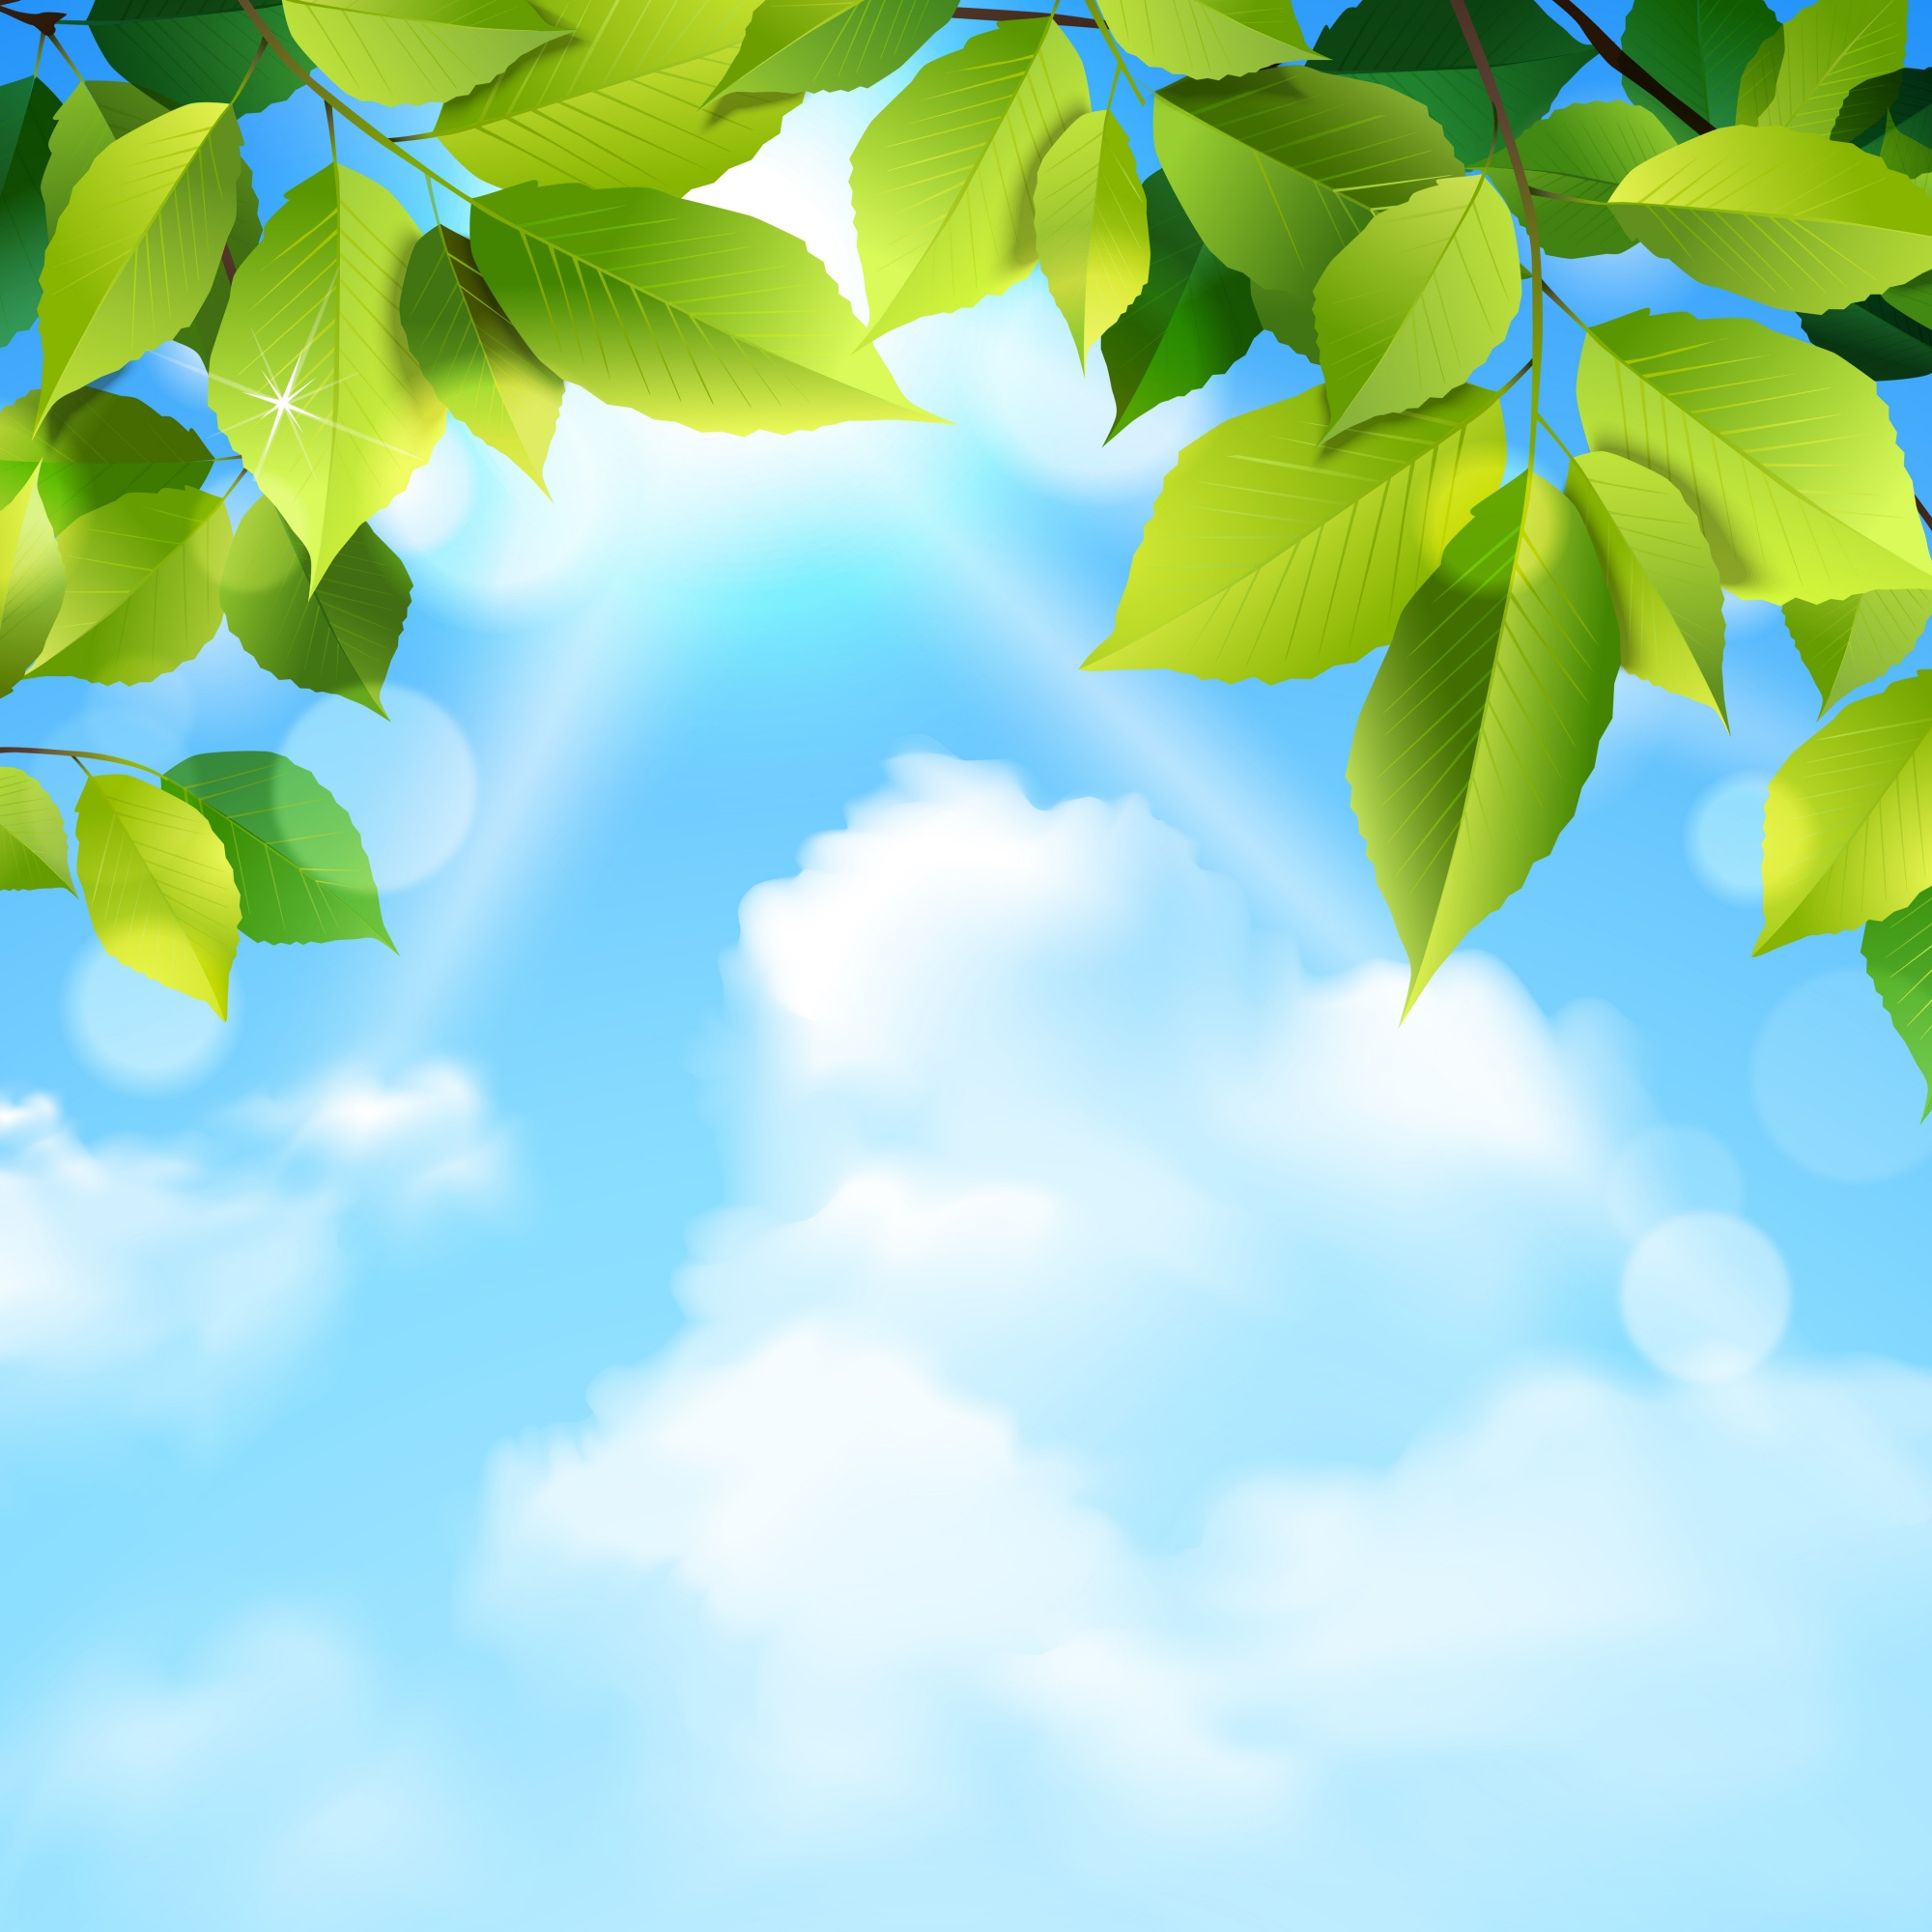 Nature vectors 137100 free files in eps format clouds and leaves background voltagebd Images